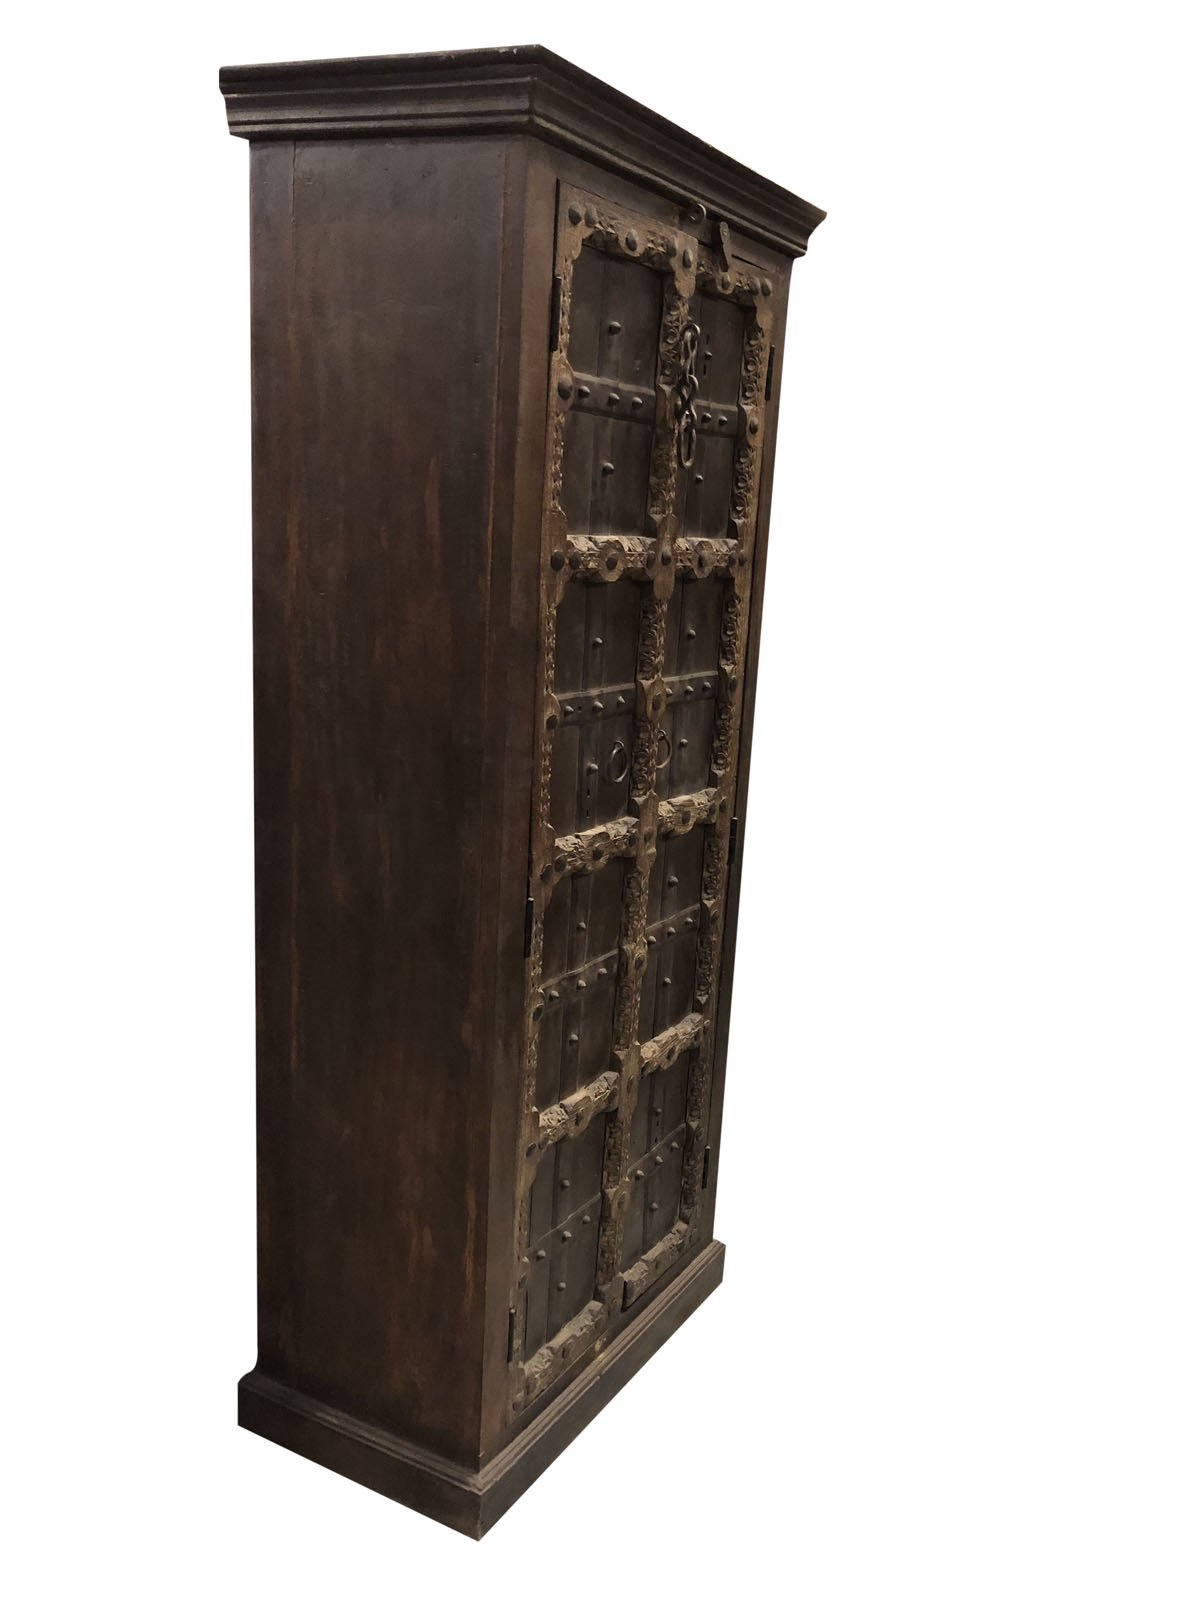 Mogul Interior Antique Indian Armoire Hand Carved Iron Nailed Brown Storage Wardrobe Cabinet Conscious Interiors Design by Mogul Interior (Image #3)